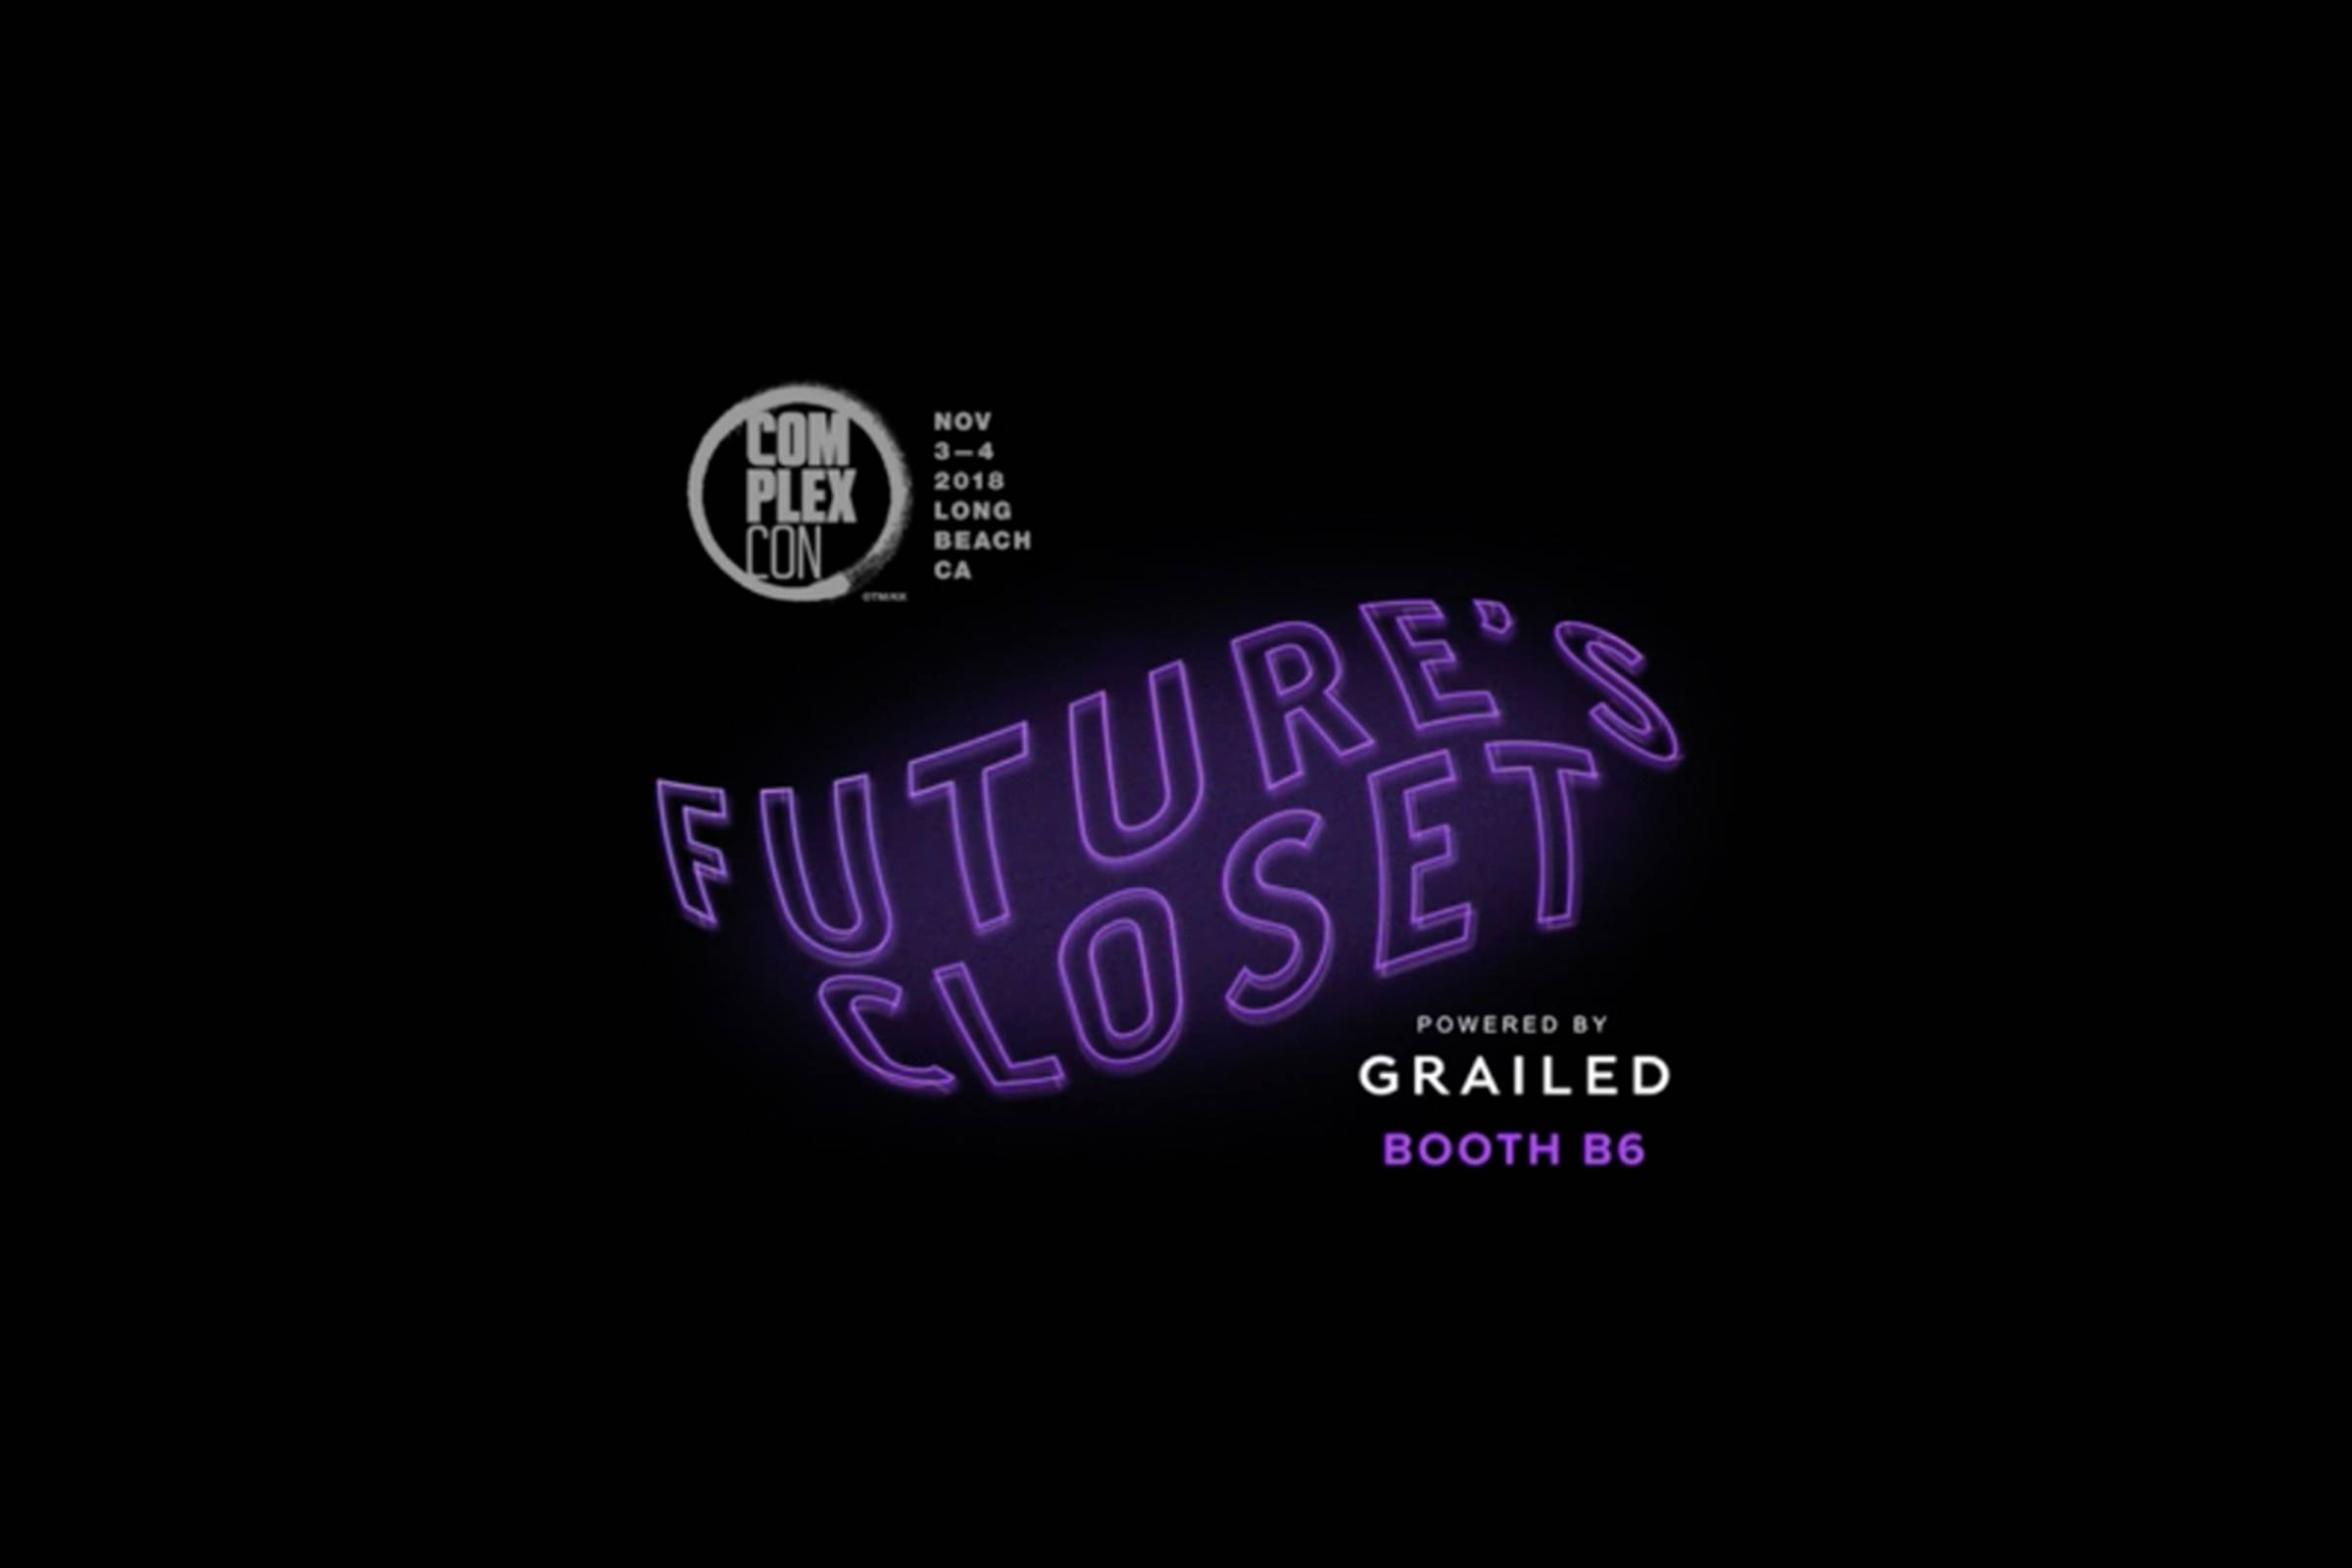 Live from ComplexCon: Future's Closet Powered By Grailed